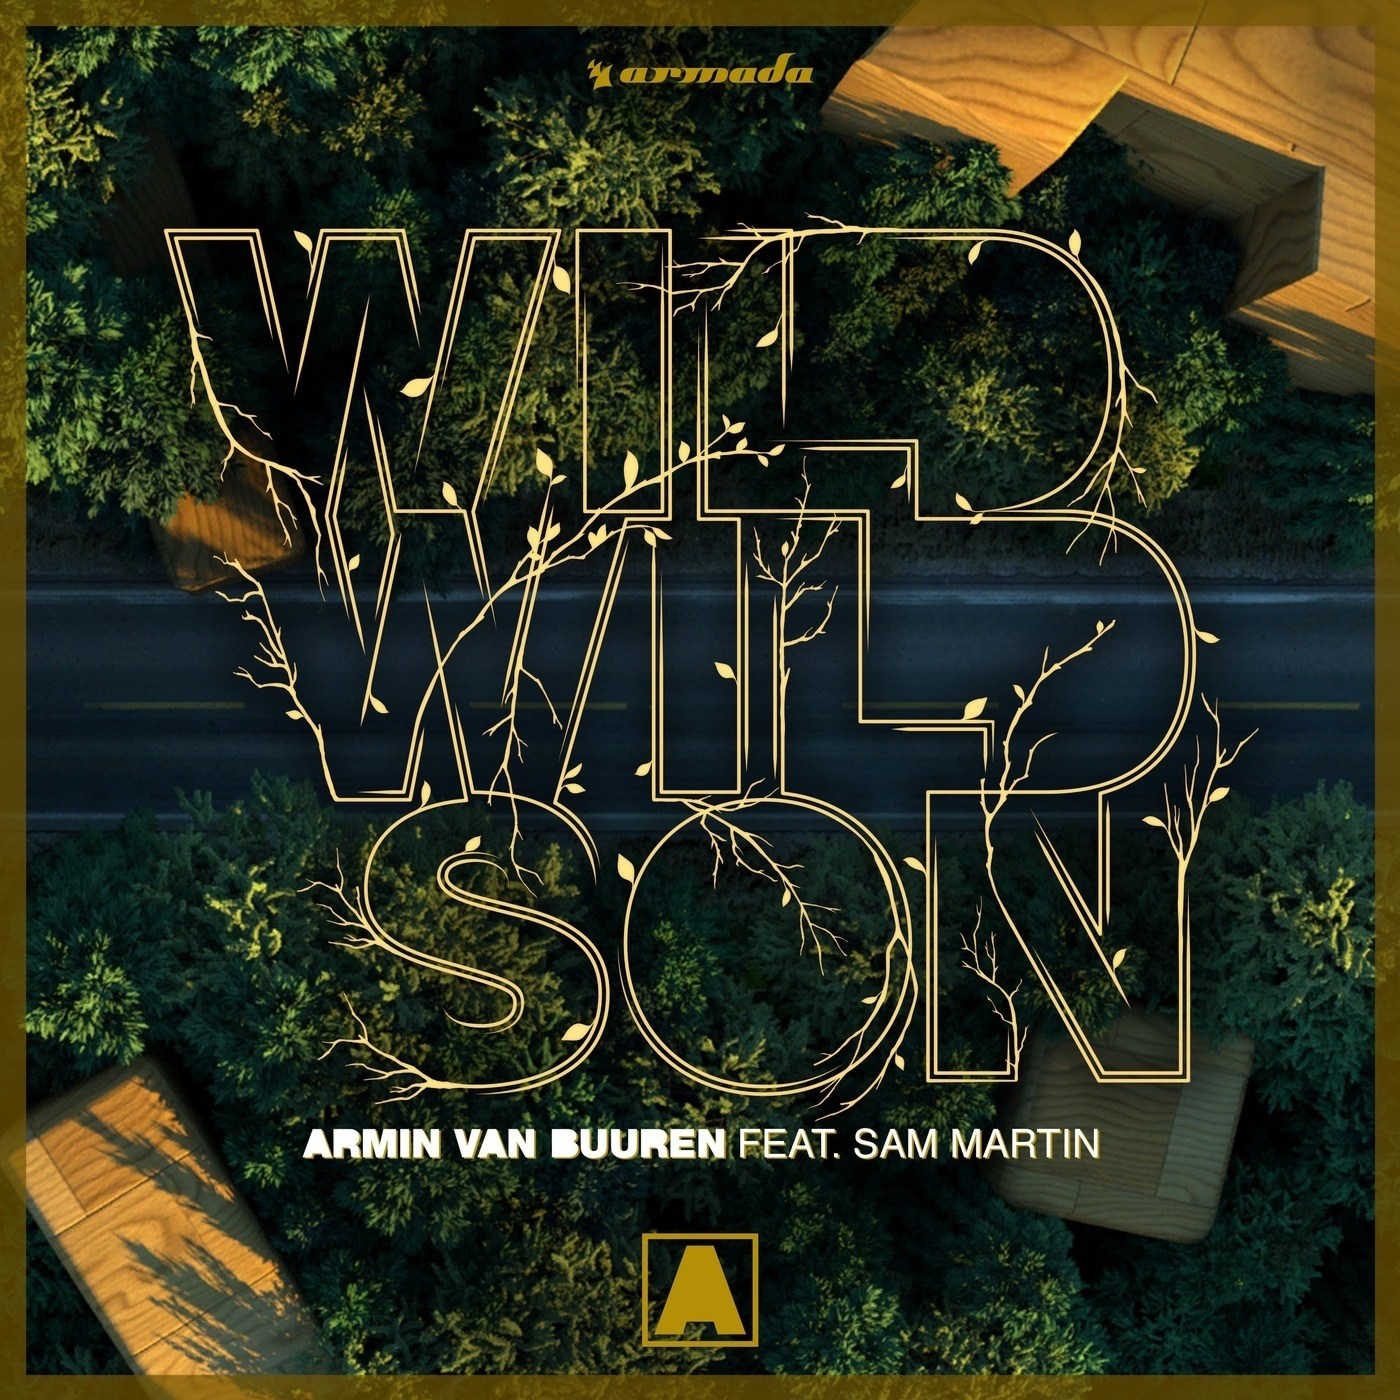 Download Armin van Buuren - Wild Wild Son (feat. Sam Martin) [2018] [320 KBPS][Pradyutvam] Torrent